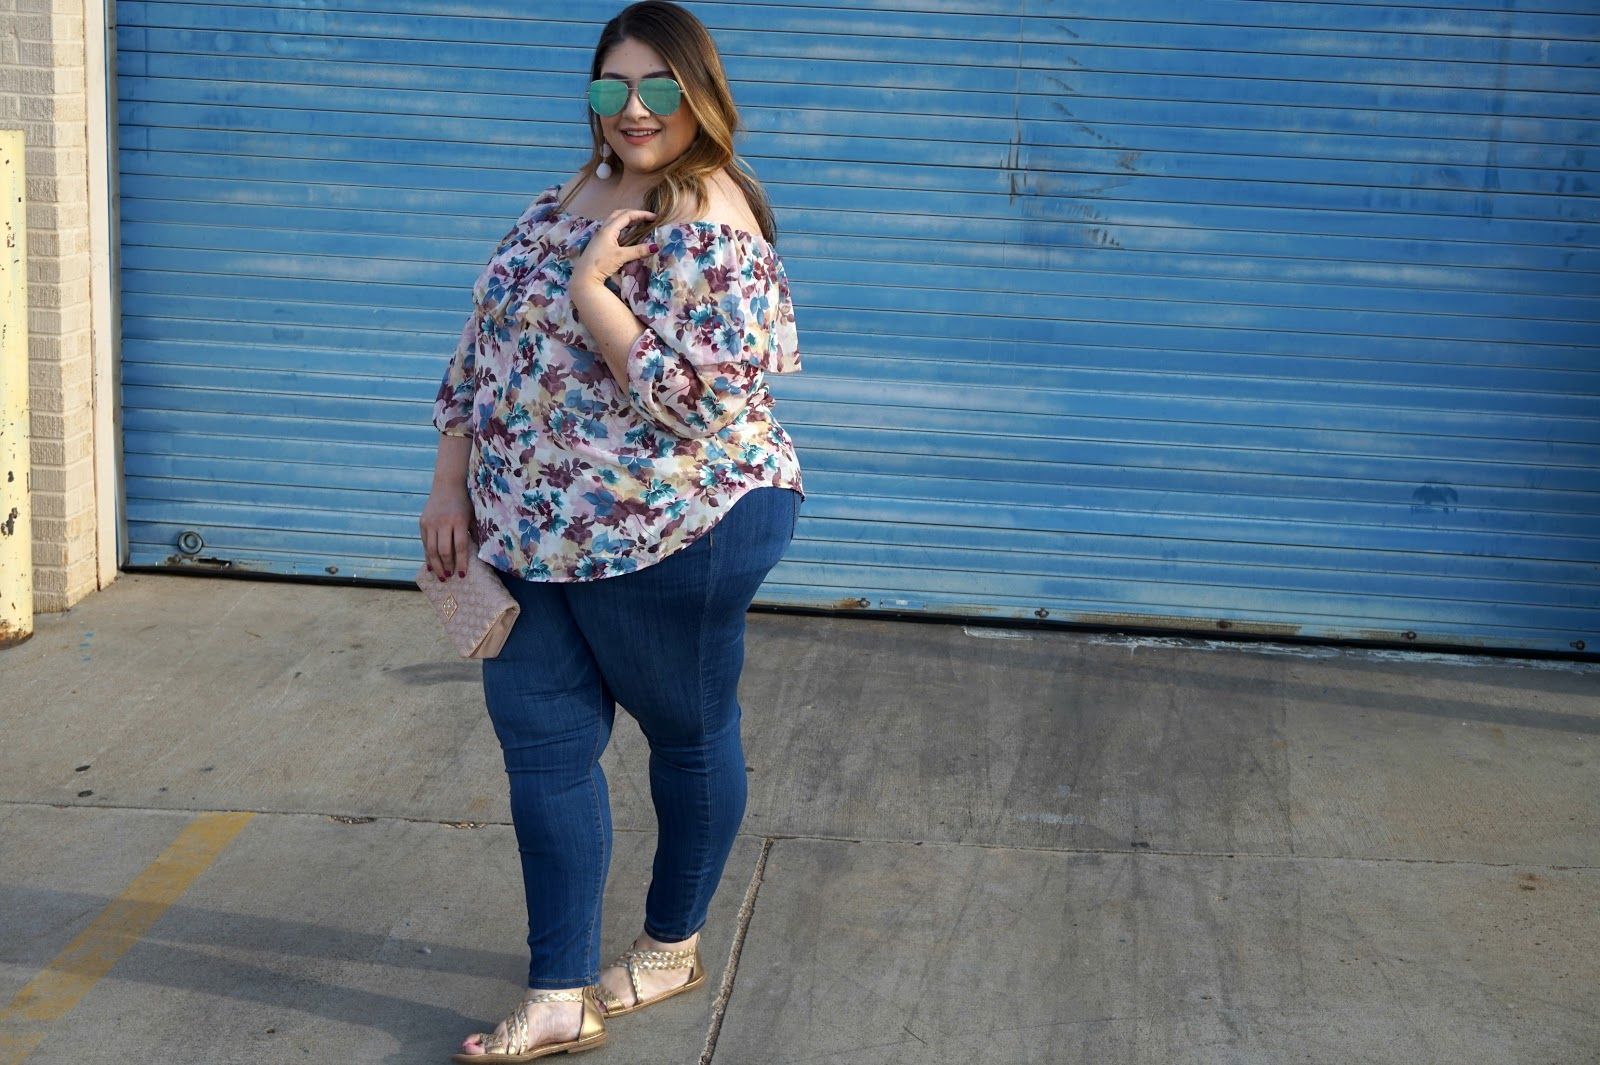 Off The Shoulder Floral Plus Size Blouse | Easy & Cute Plus Size Outfits | Dia & Co Plus Size Clothing Subscription | Plus Size Outfits // Beauty With Lily, A West Texas Beauty, Fashion & Lifestyle Blog